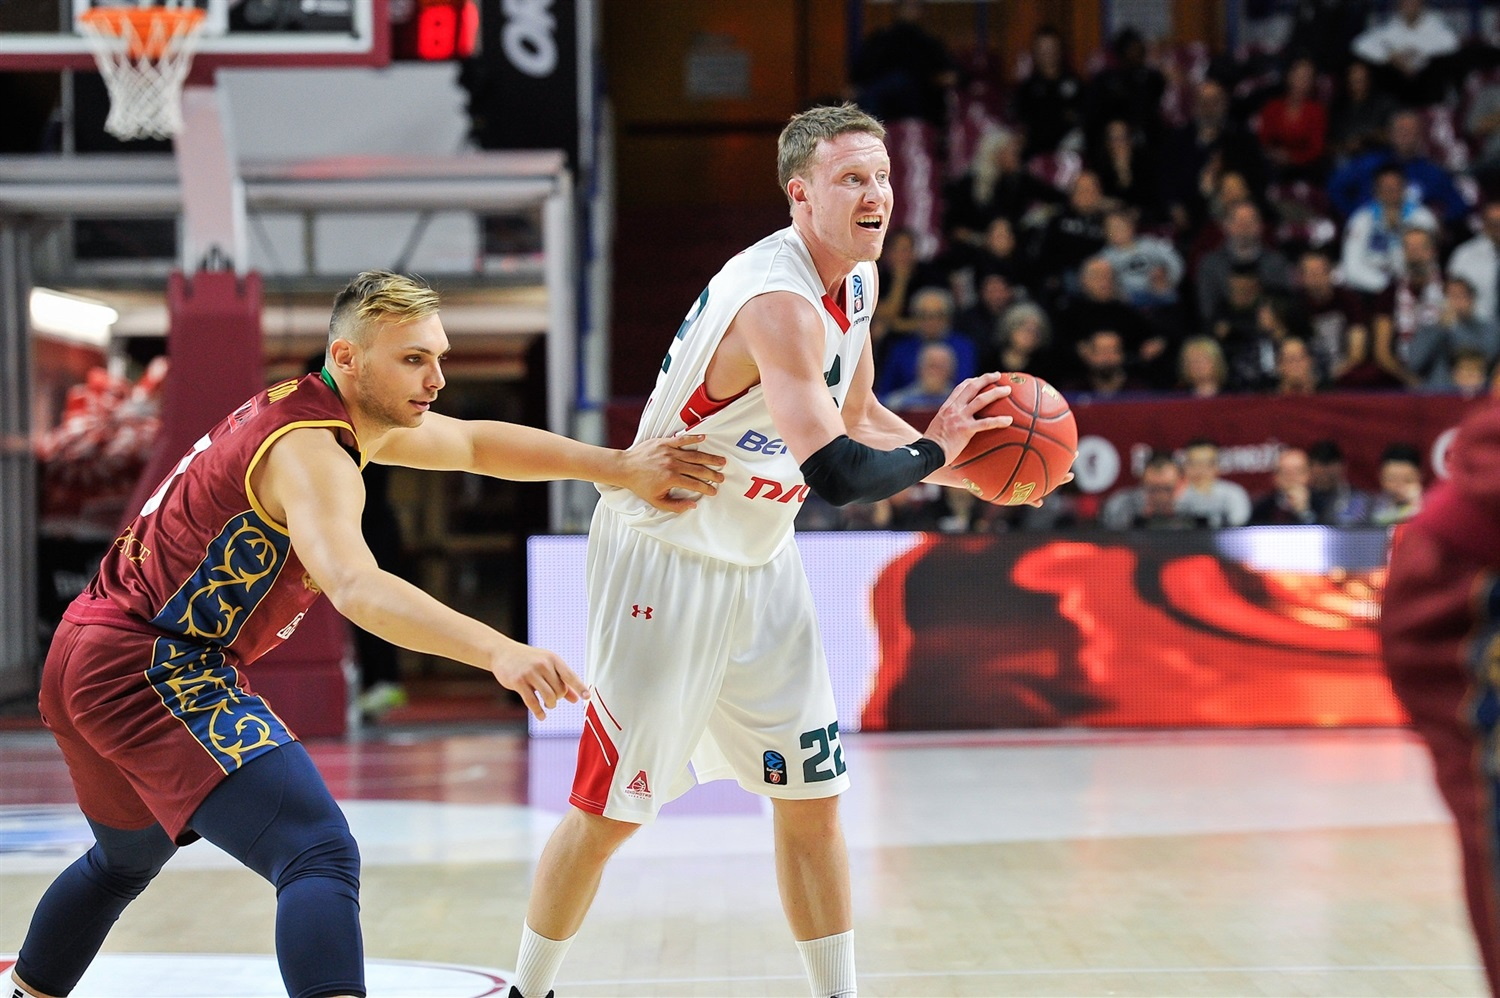 Dmitry Kulagin - Lokomotiv Kuban Krasnodar (photo Reyer) - EC19